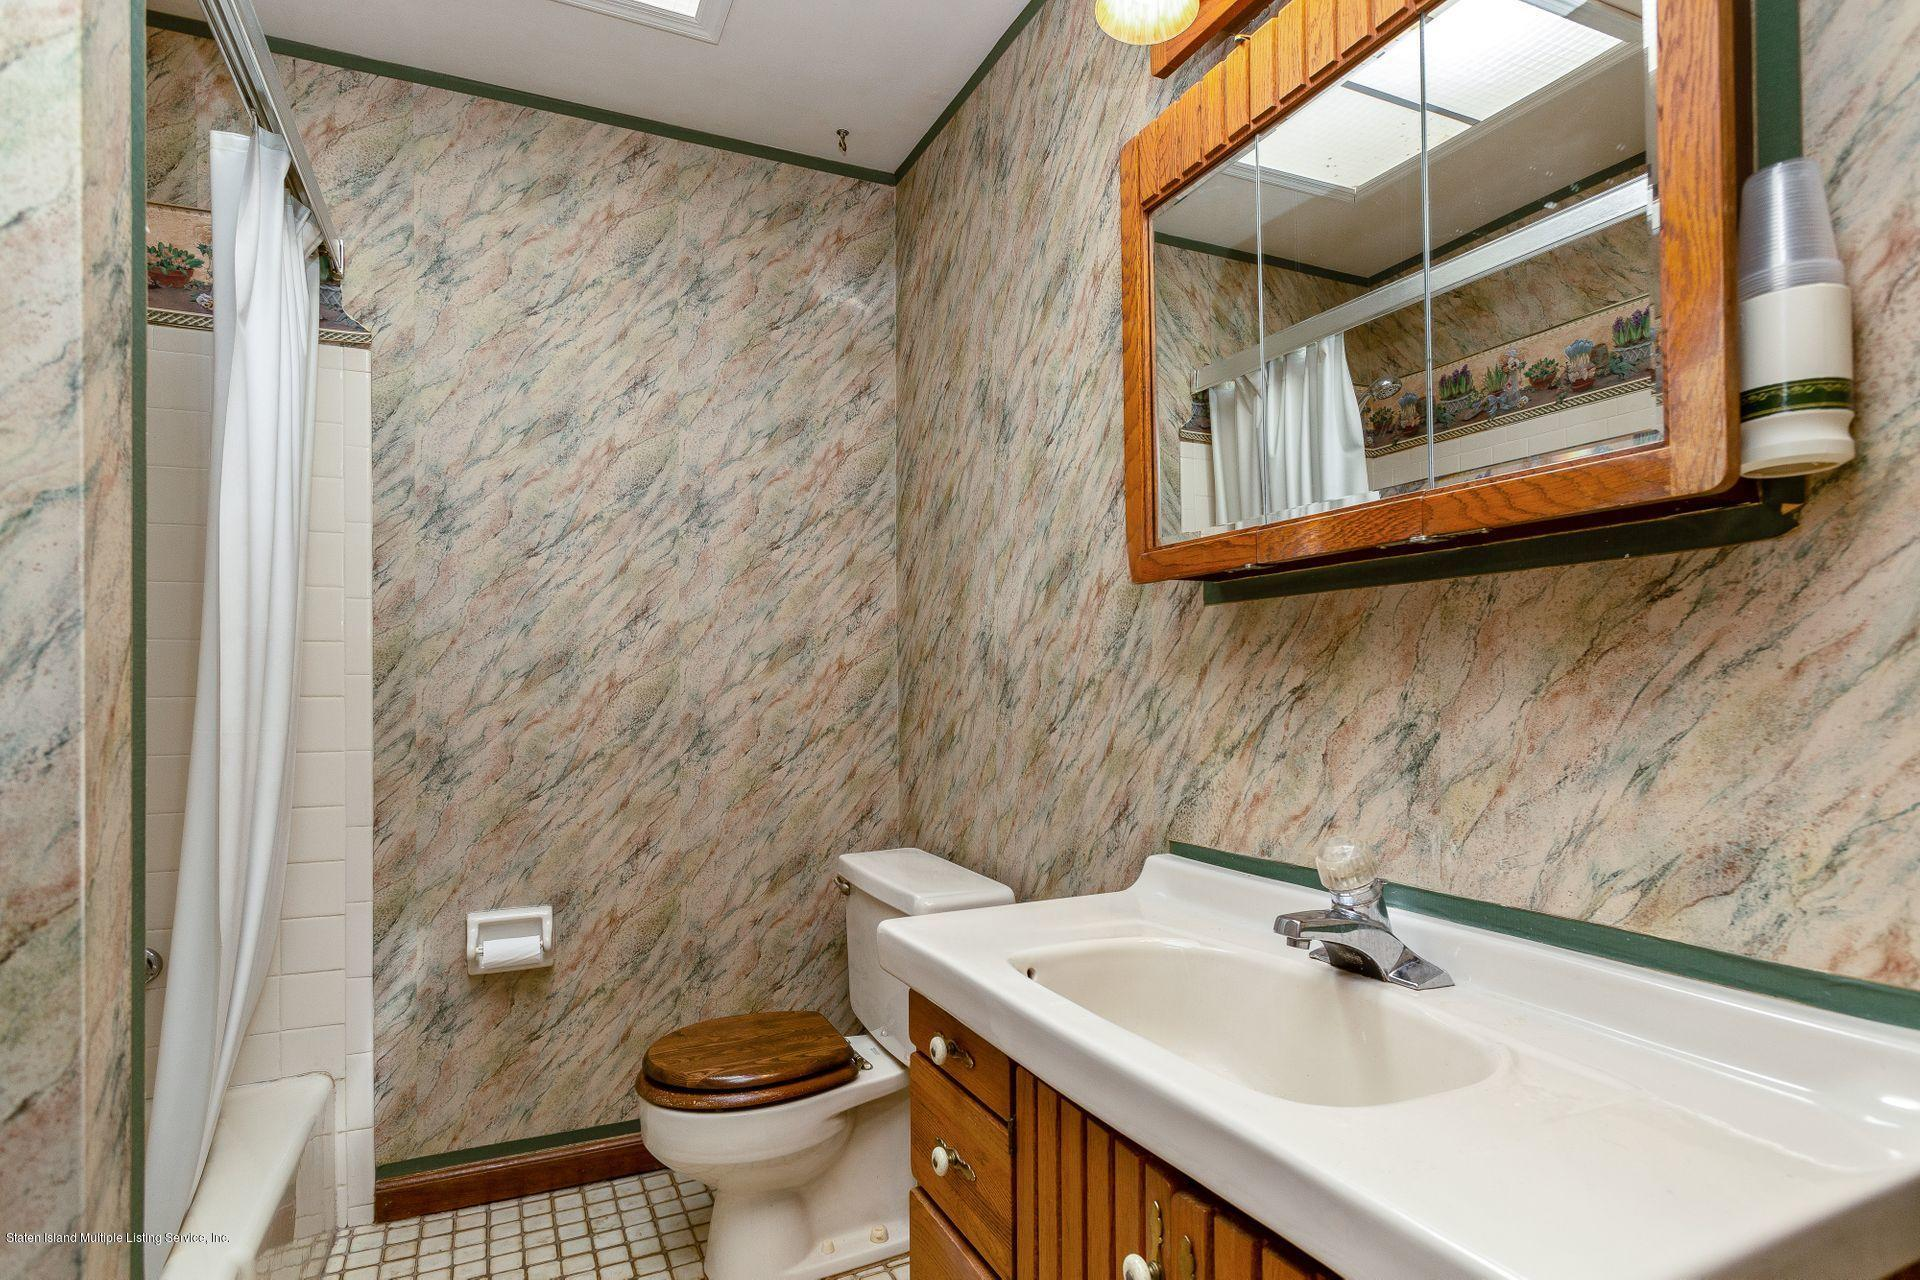 Single Family - Attached 83 Chester Avenue  Brooklyn, NY 11218, MLS-1134106-14